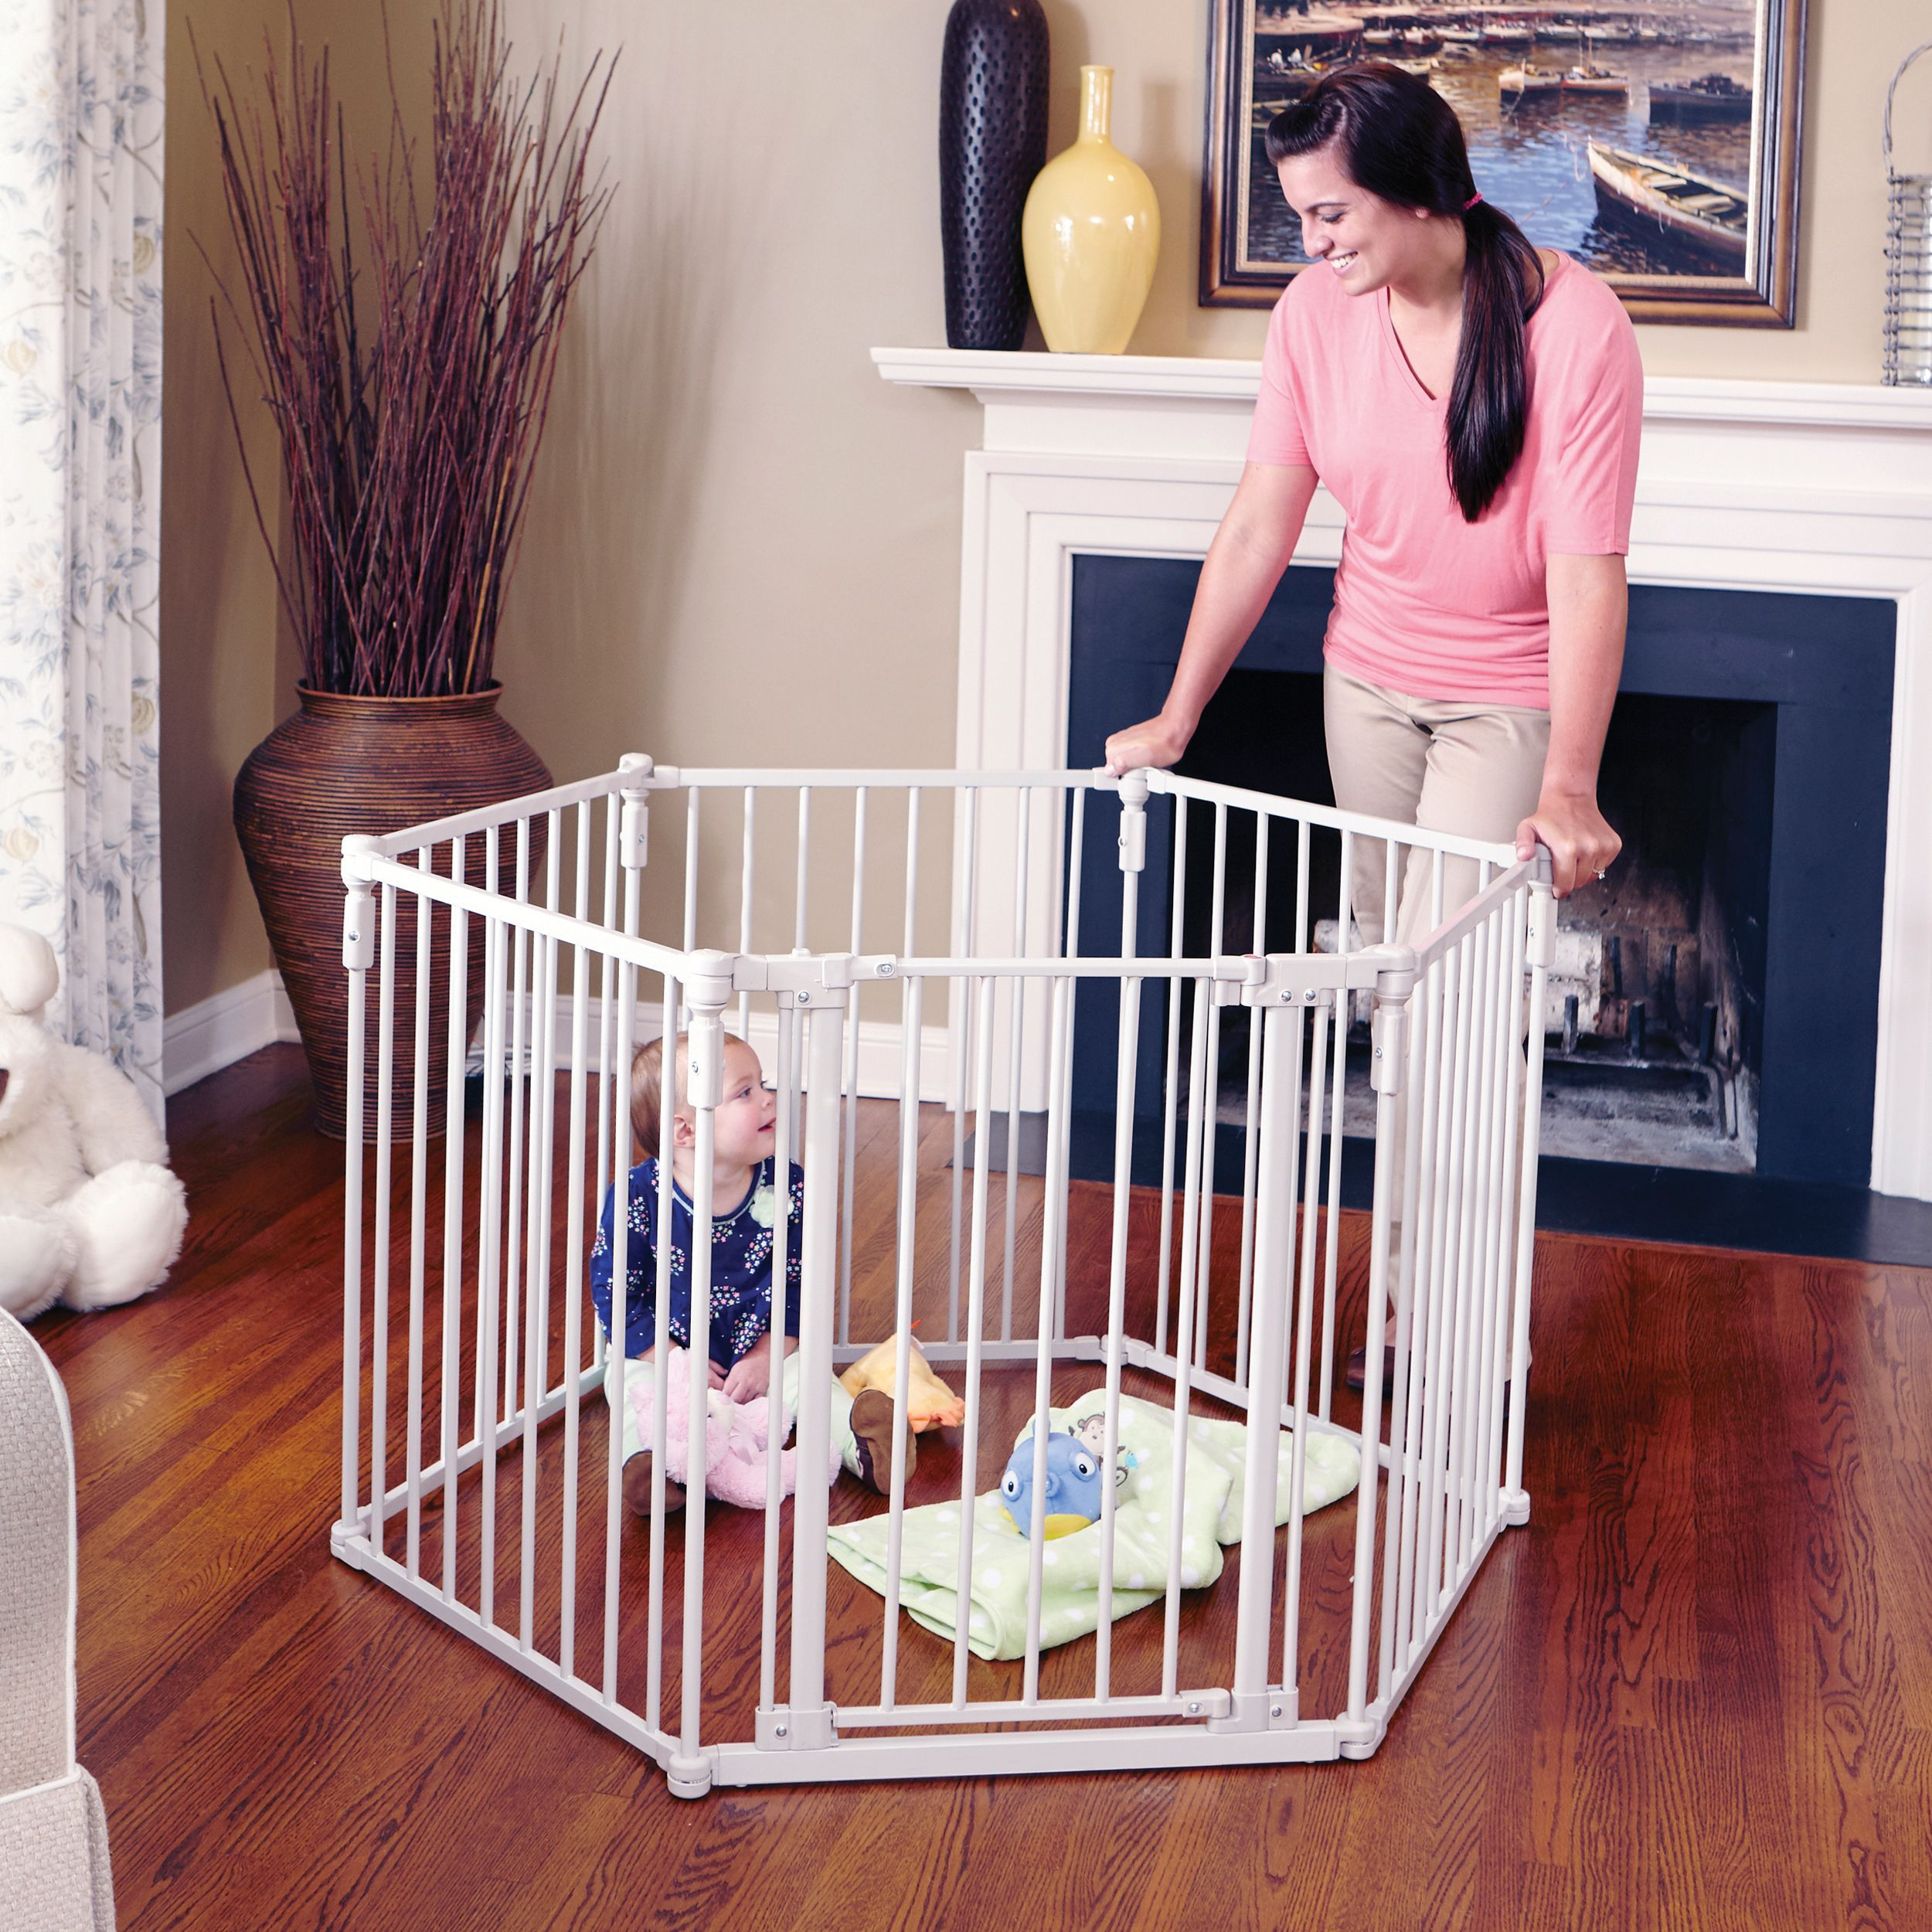 Pin By Morgan Hayes On Baby Playeryard In 2020 Best Baby Gates Baby Gates Baby Play Yard